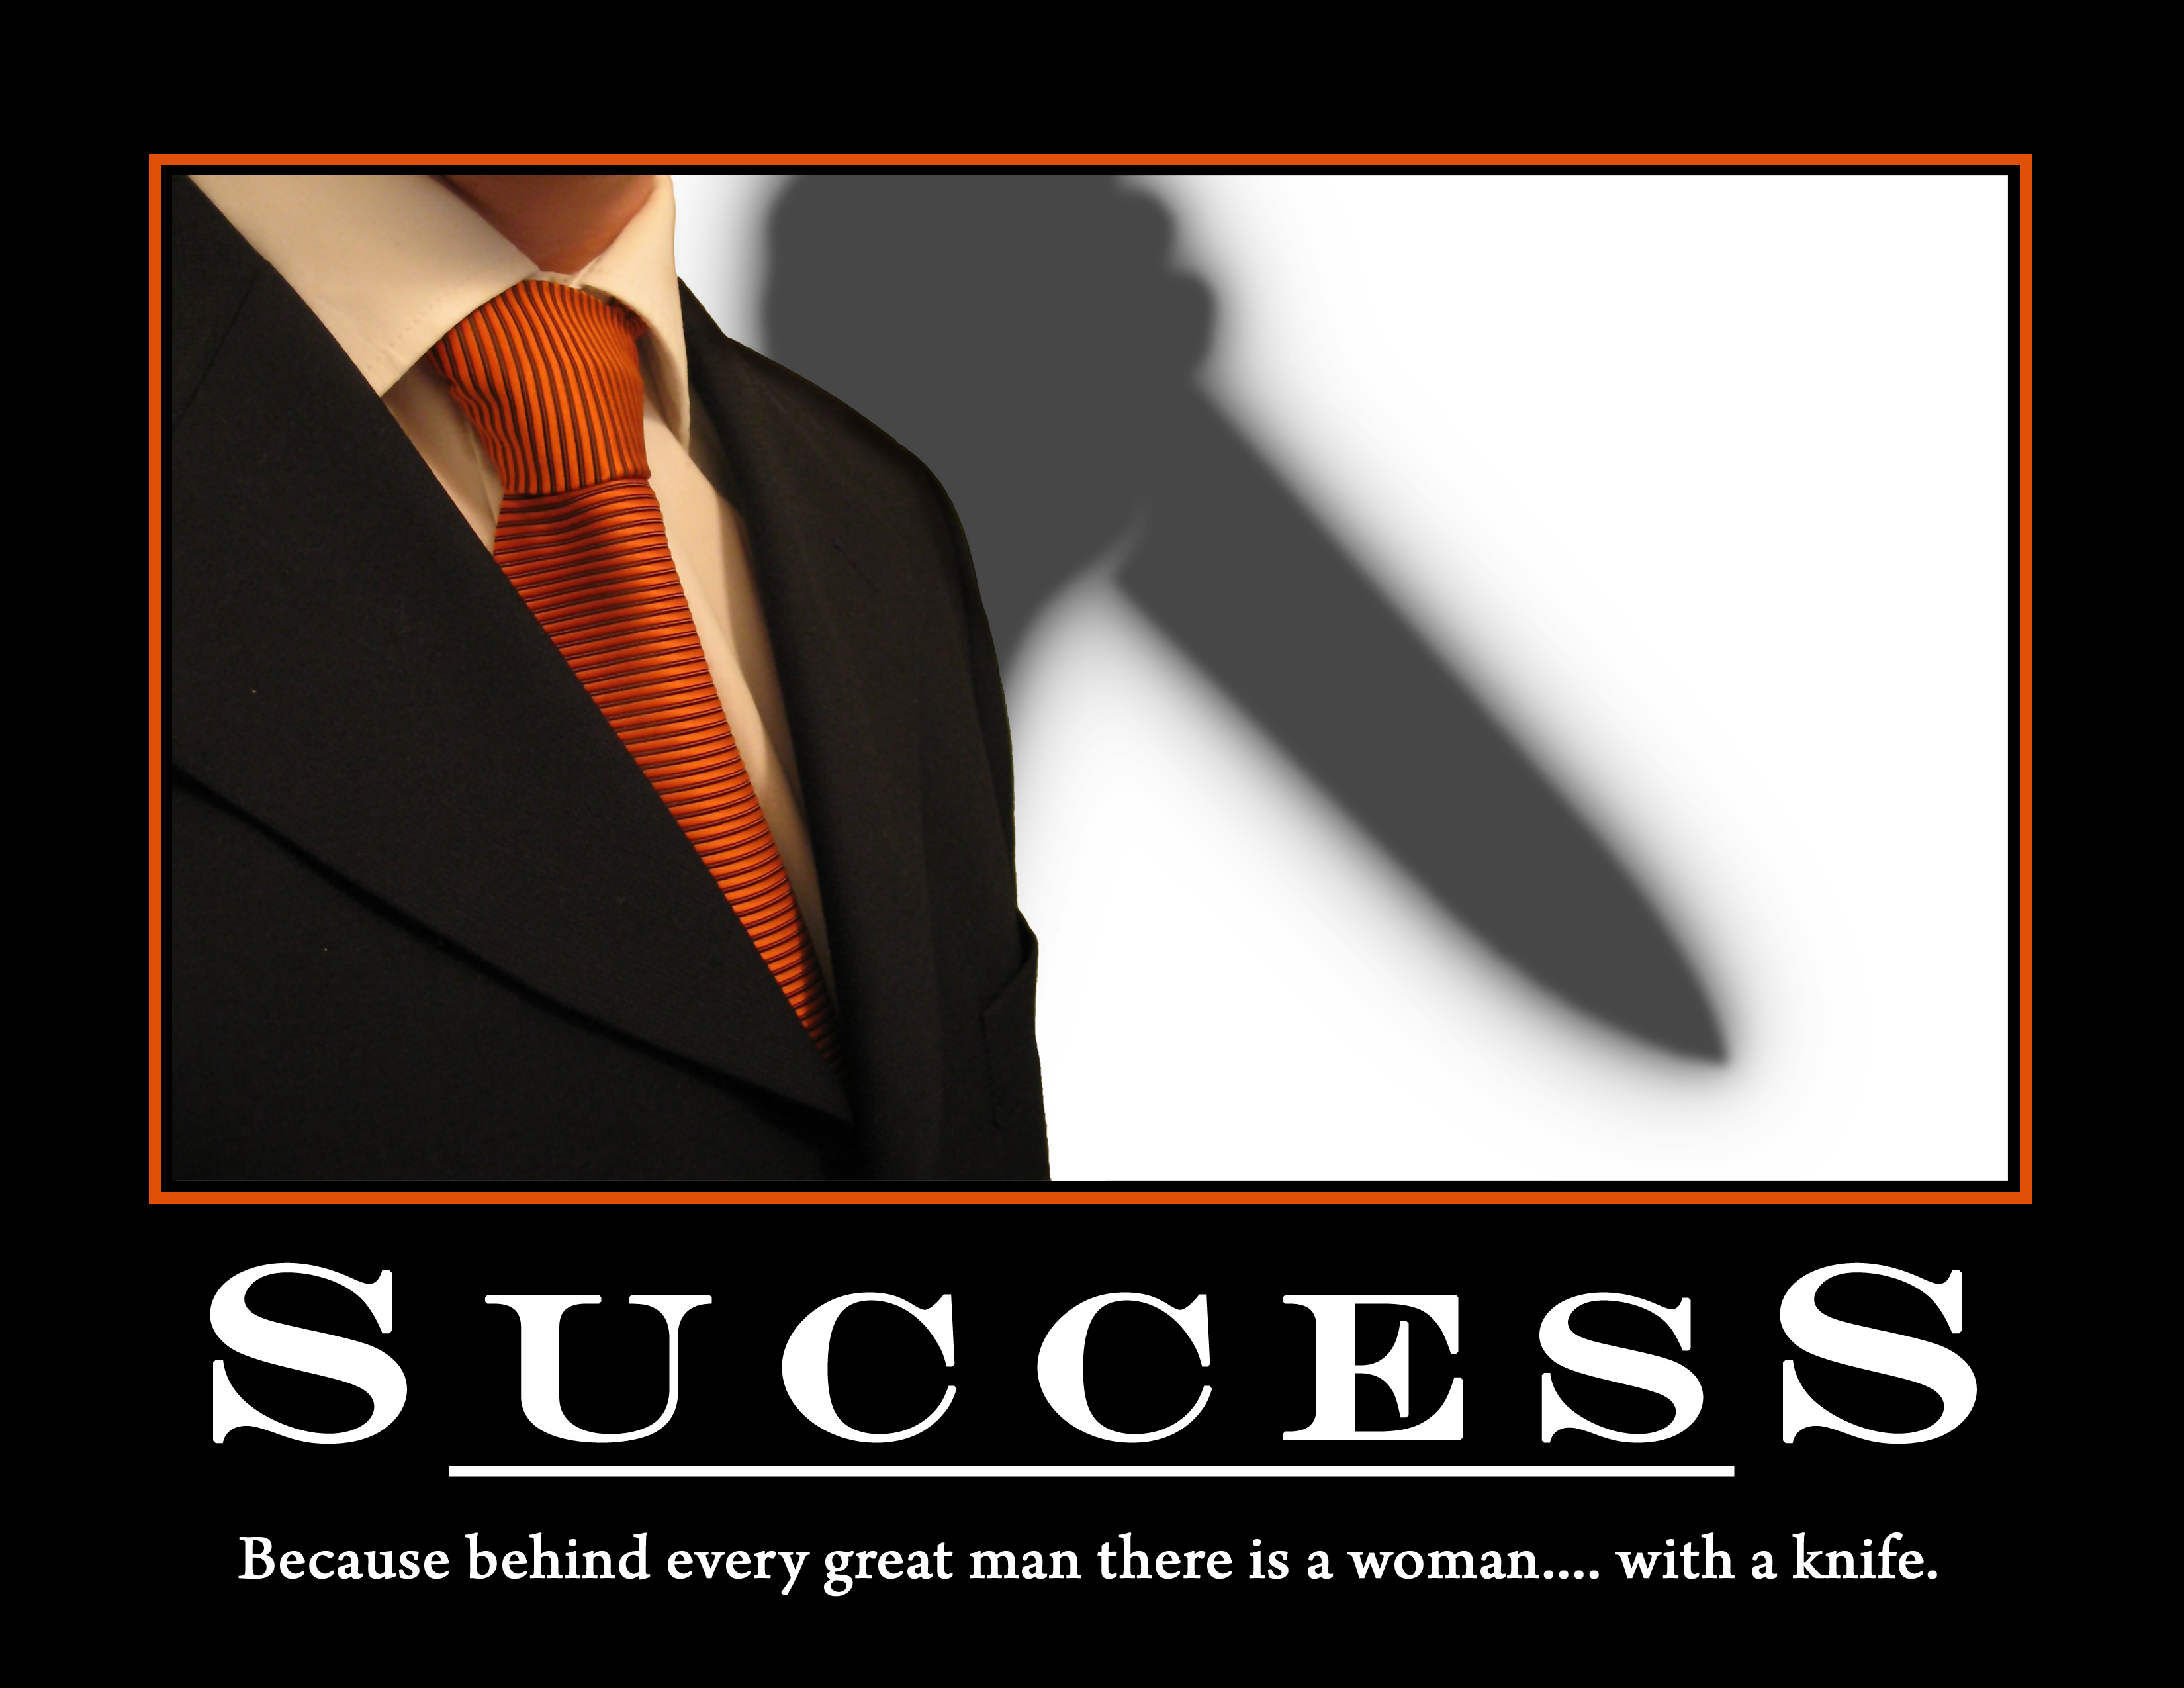 photoshop submission for demotivational